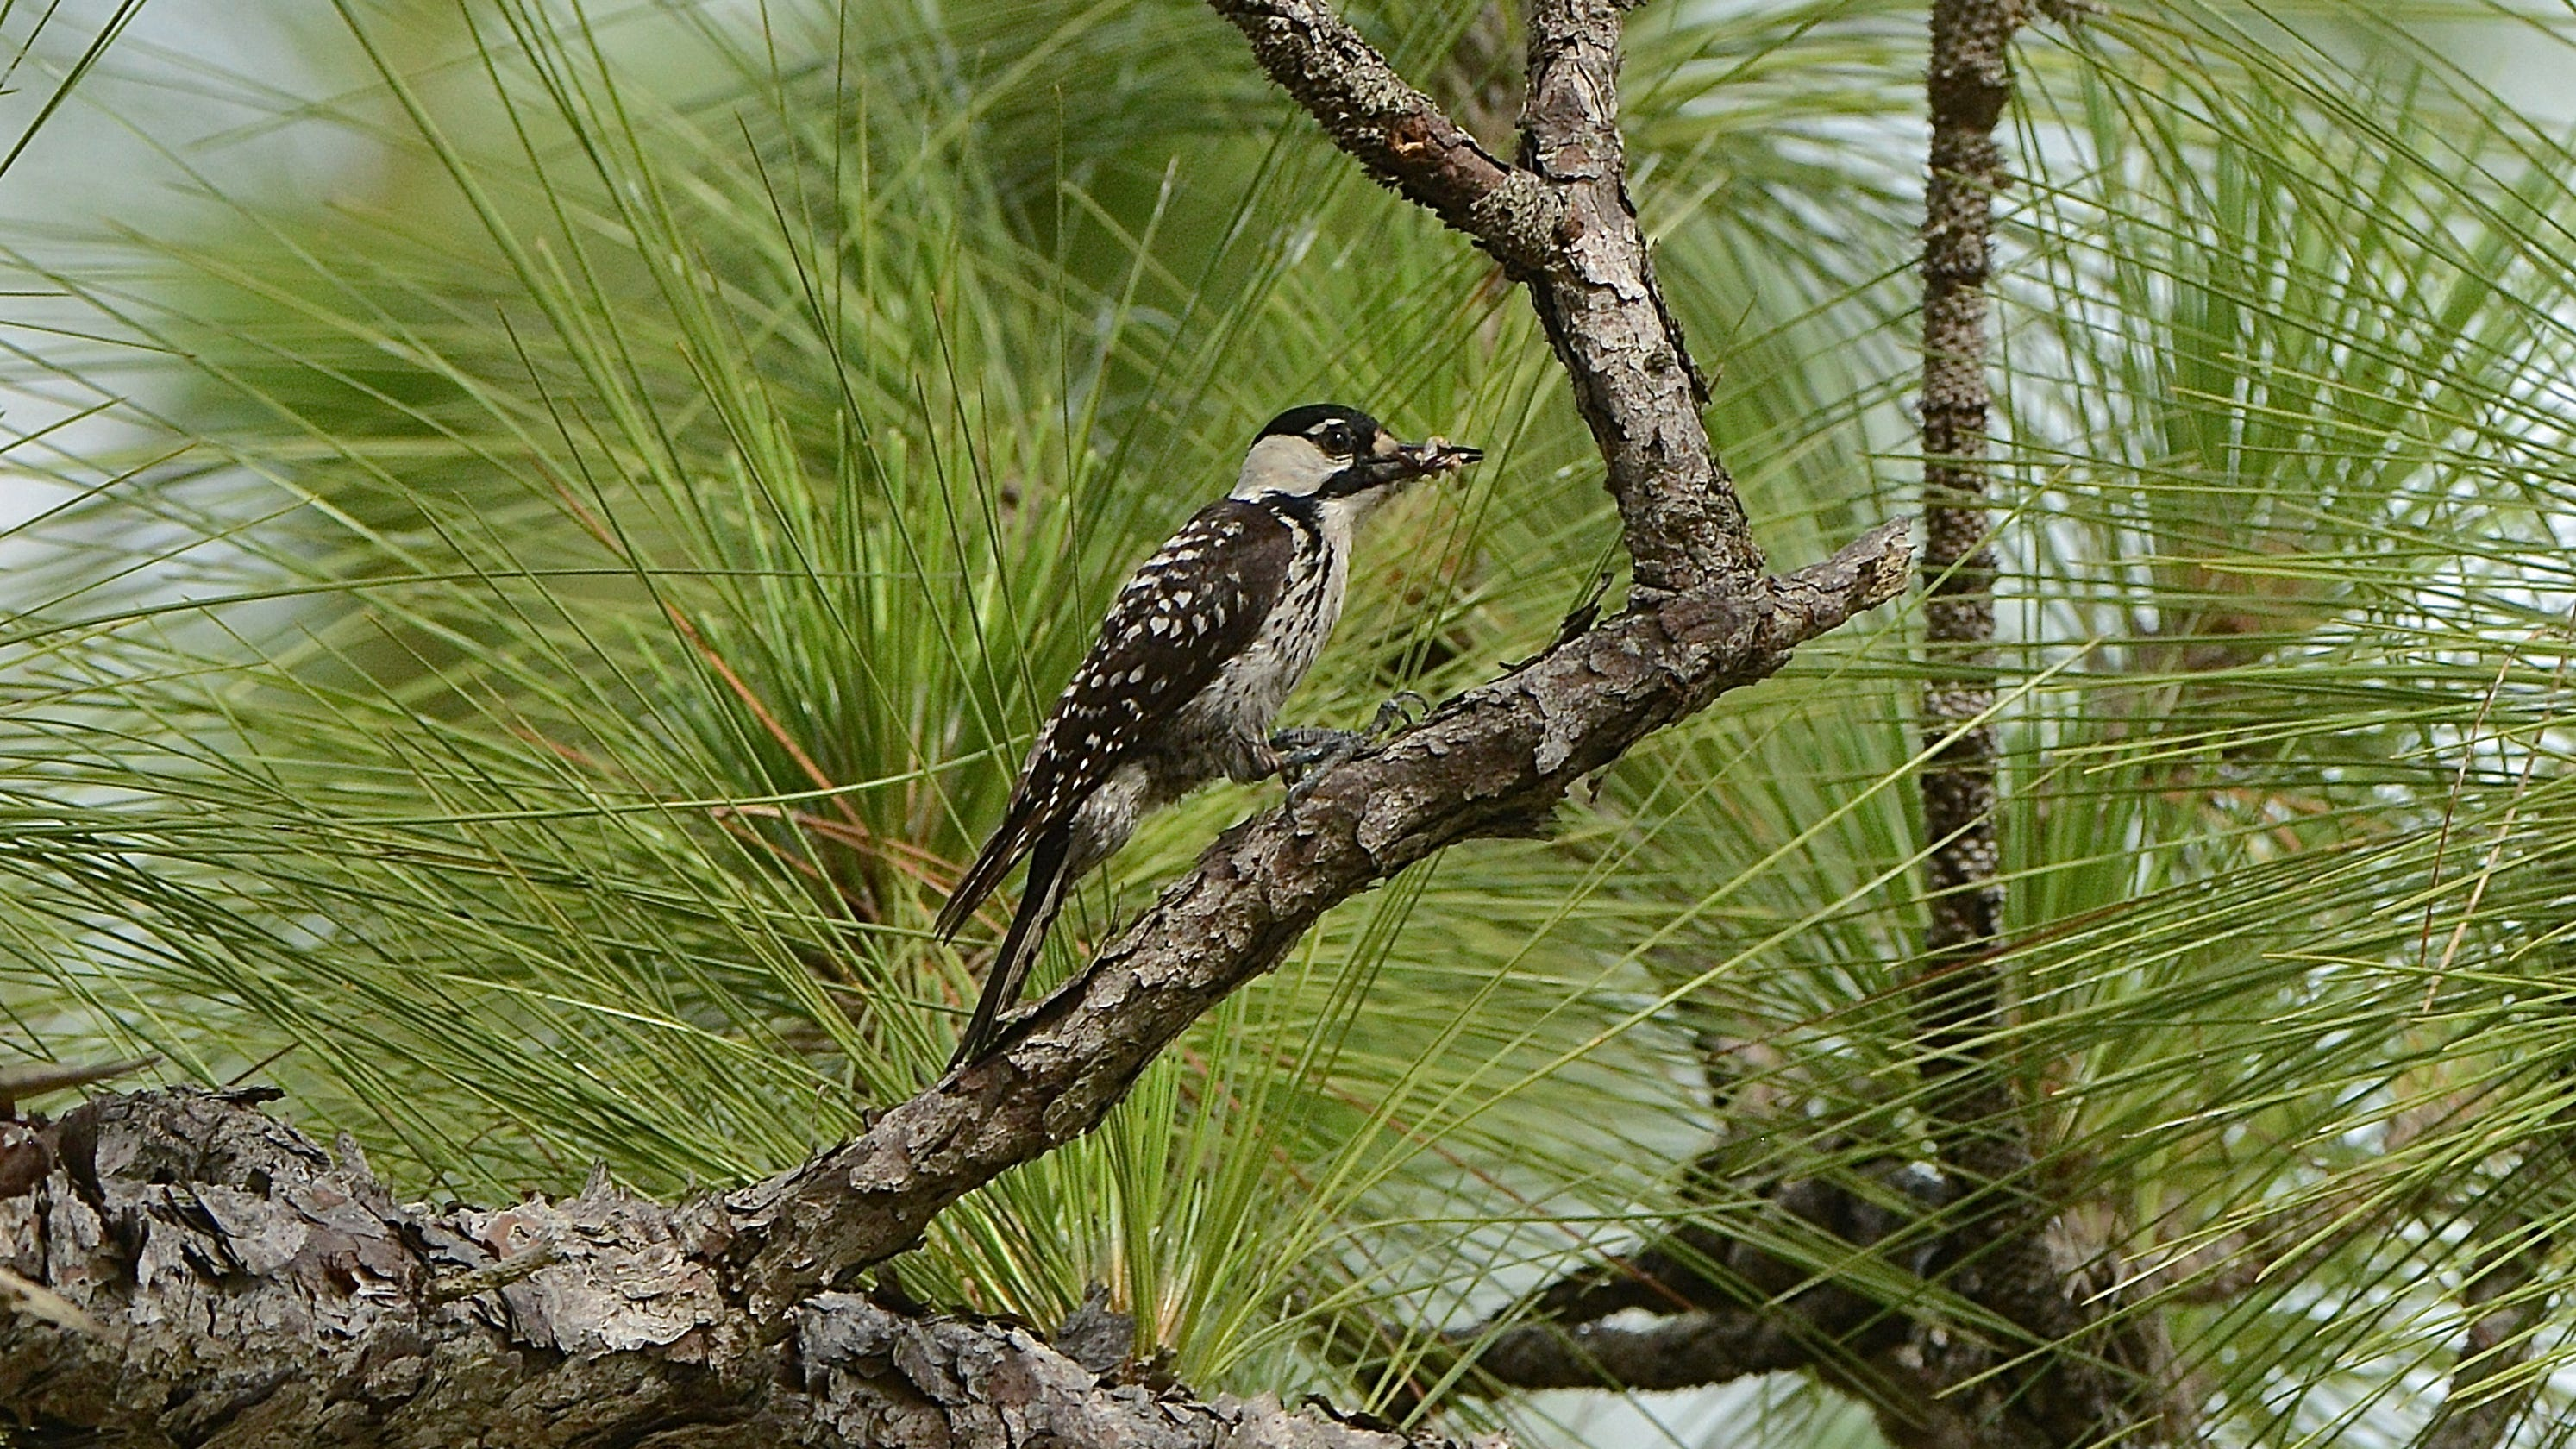 Endangered? Threatened? Feds check status of woodpeckers ...